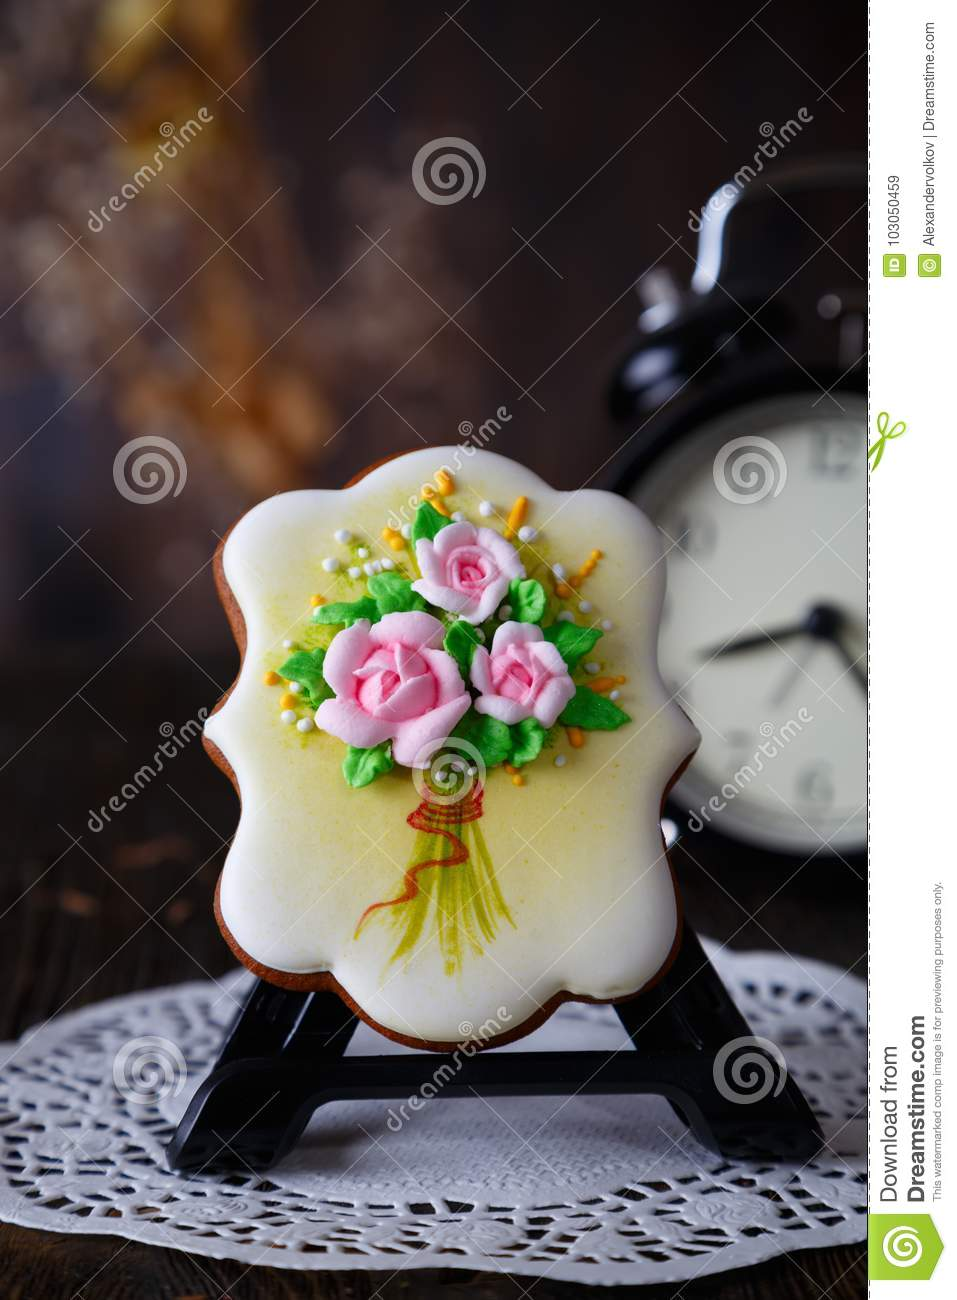 Cookie with the handmade icing flowers decoration